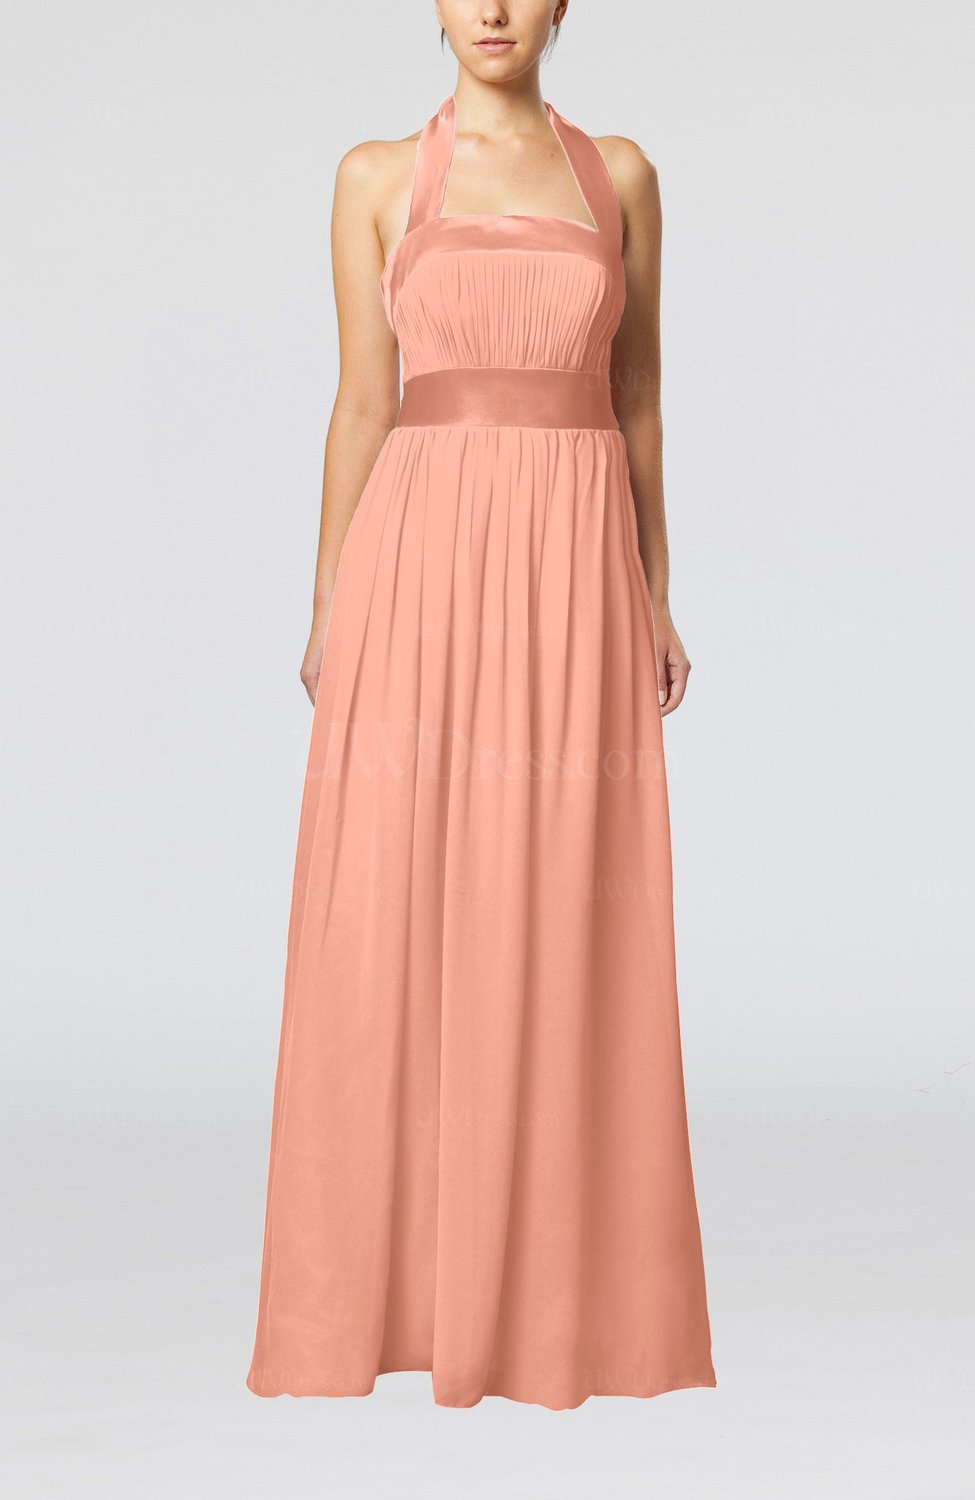 Salmon Elegant A Line Sleeveless Chiffon Floor Length